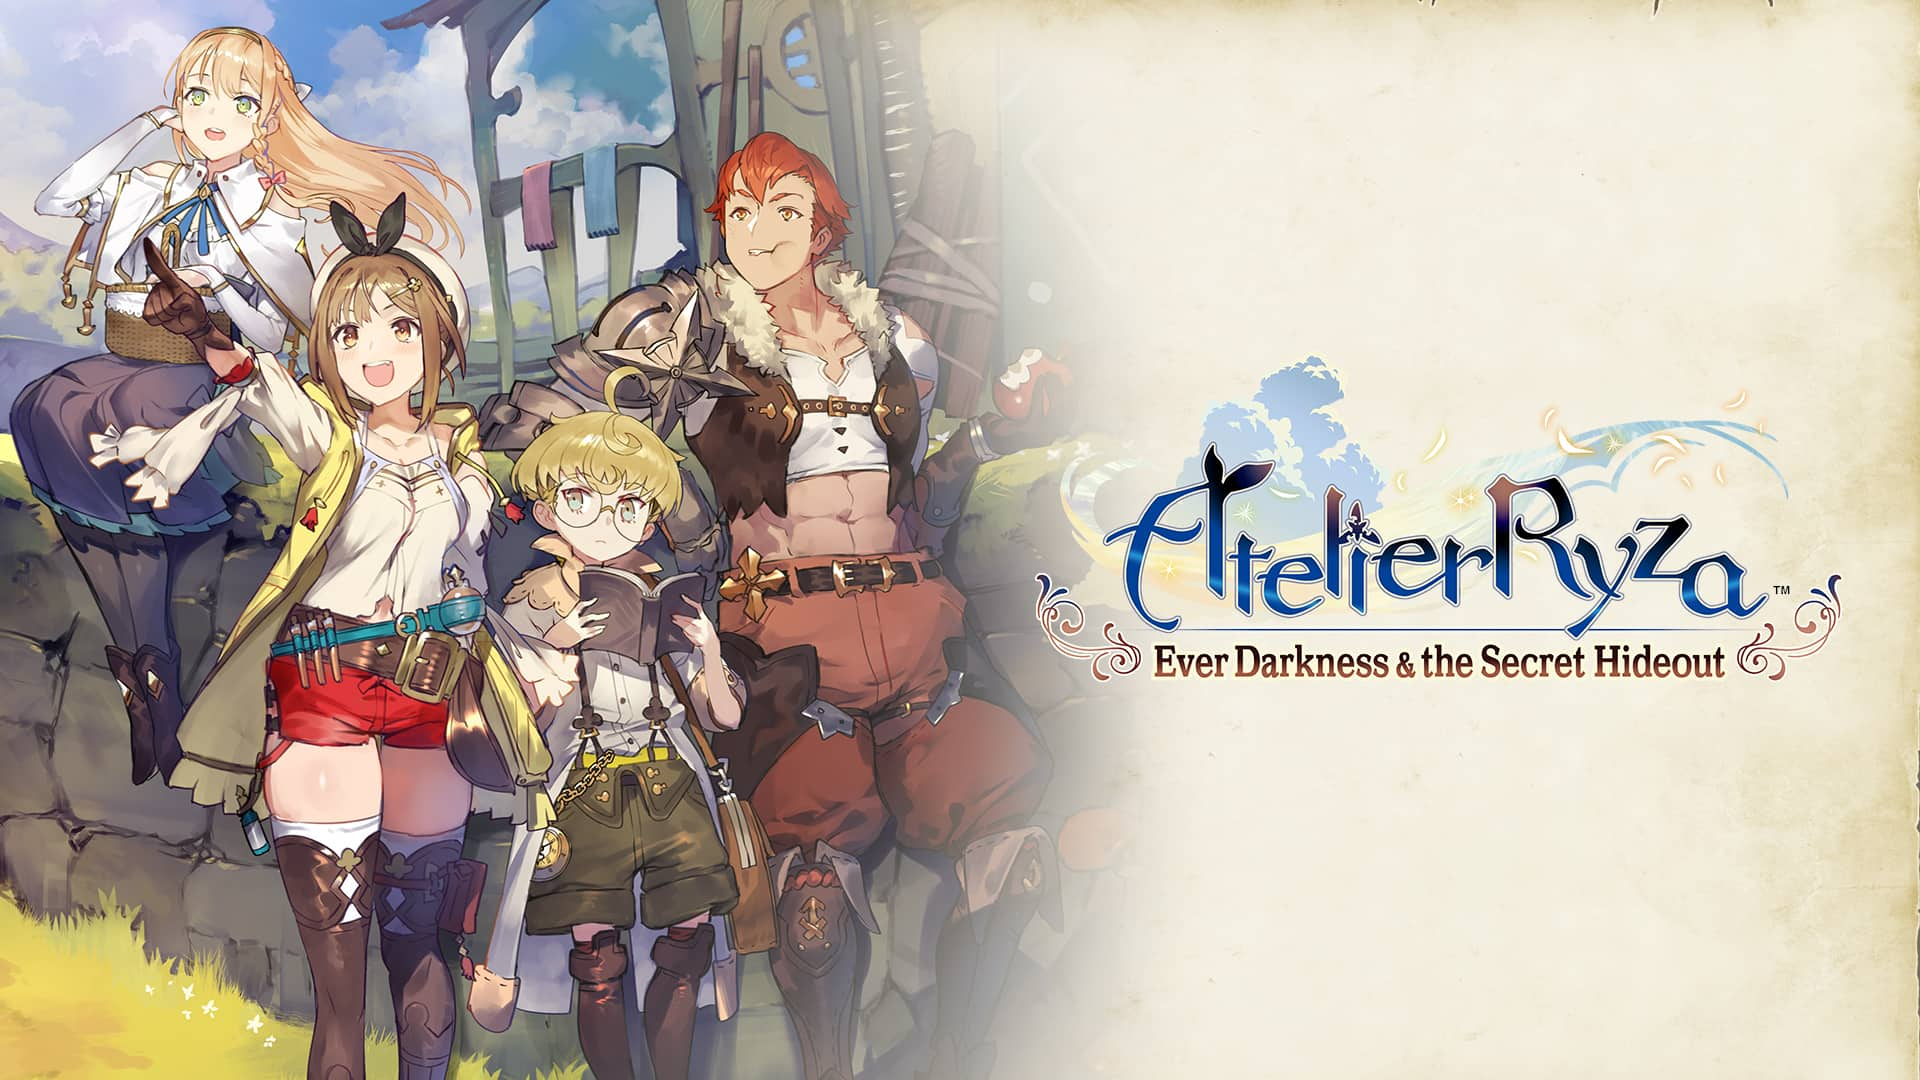 Atelier ryza ever darkness and the secret hideout $29.97